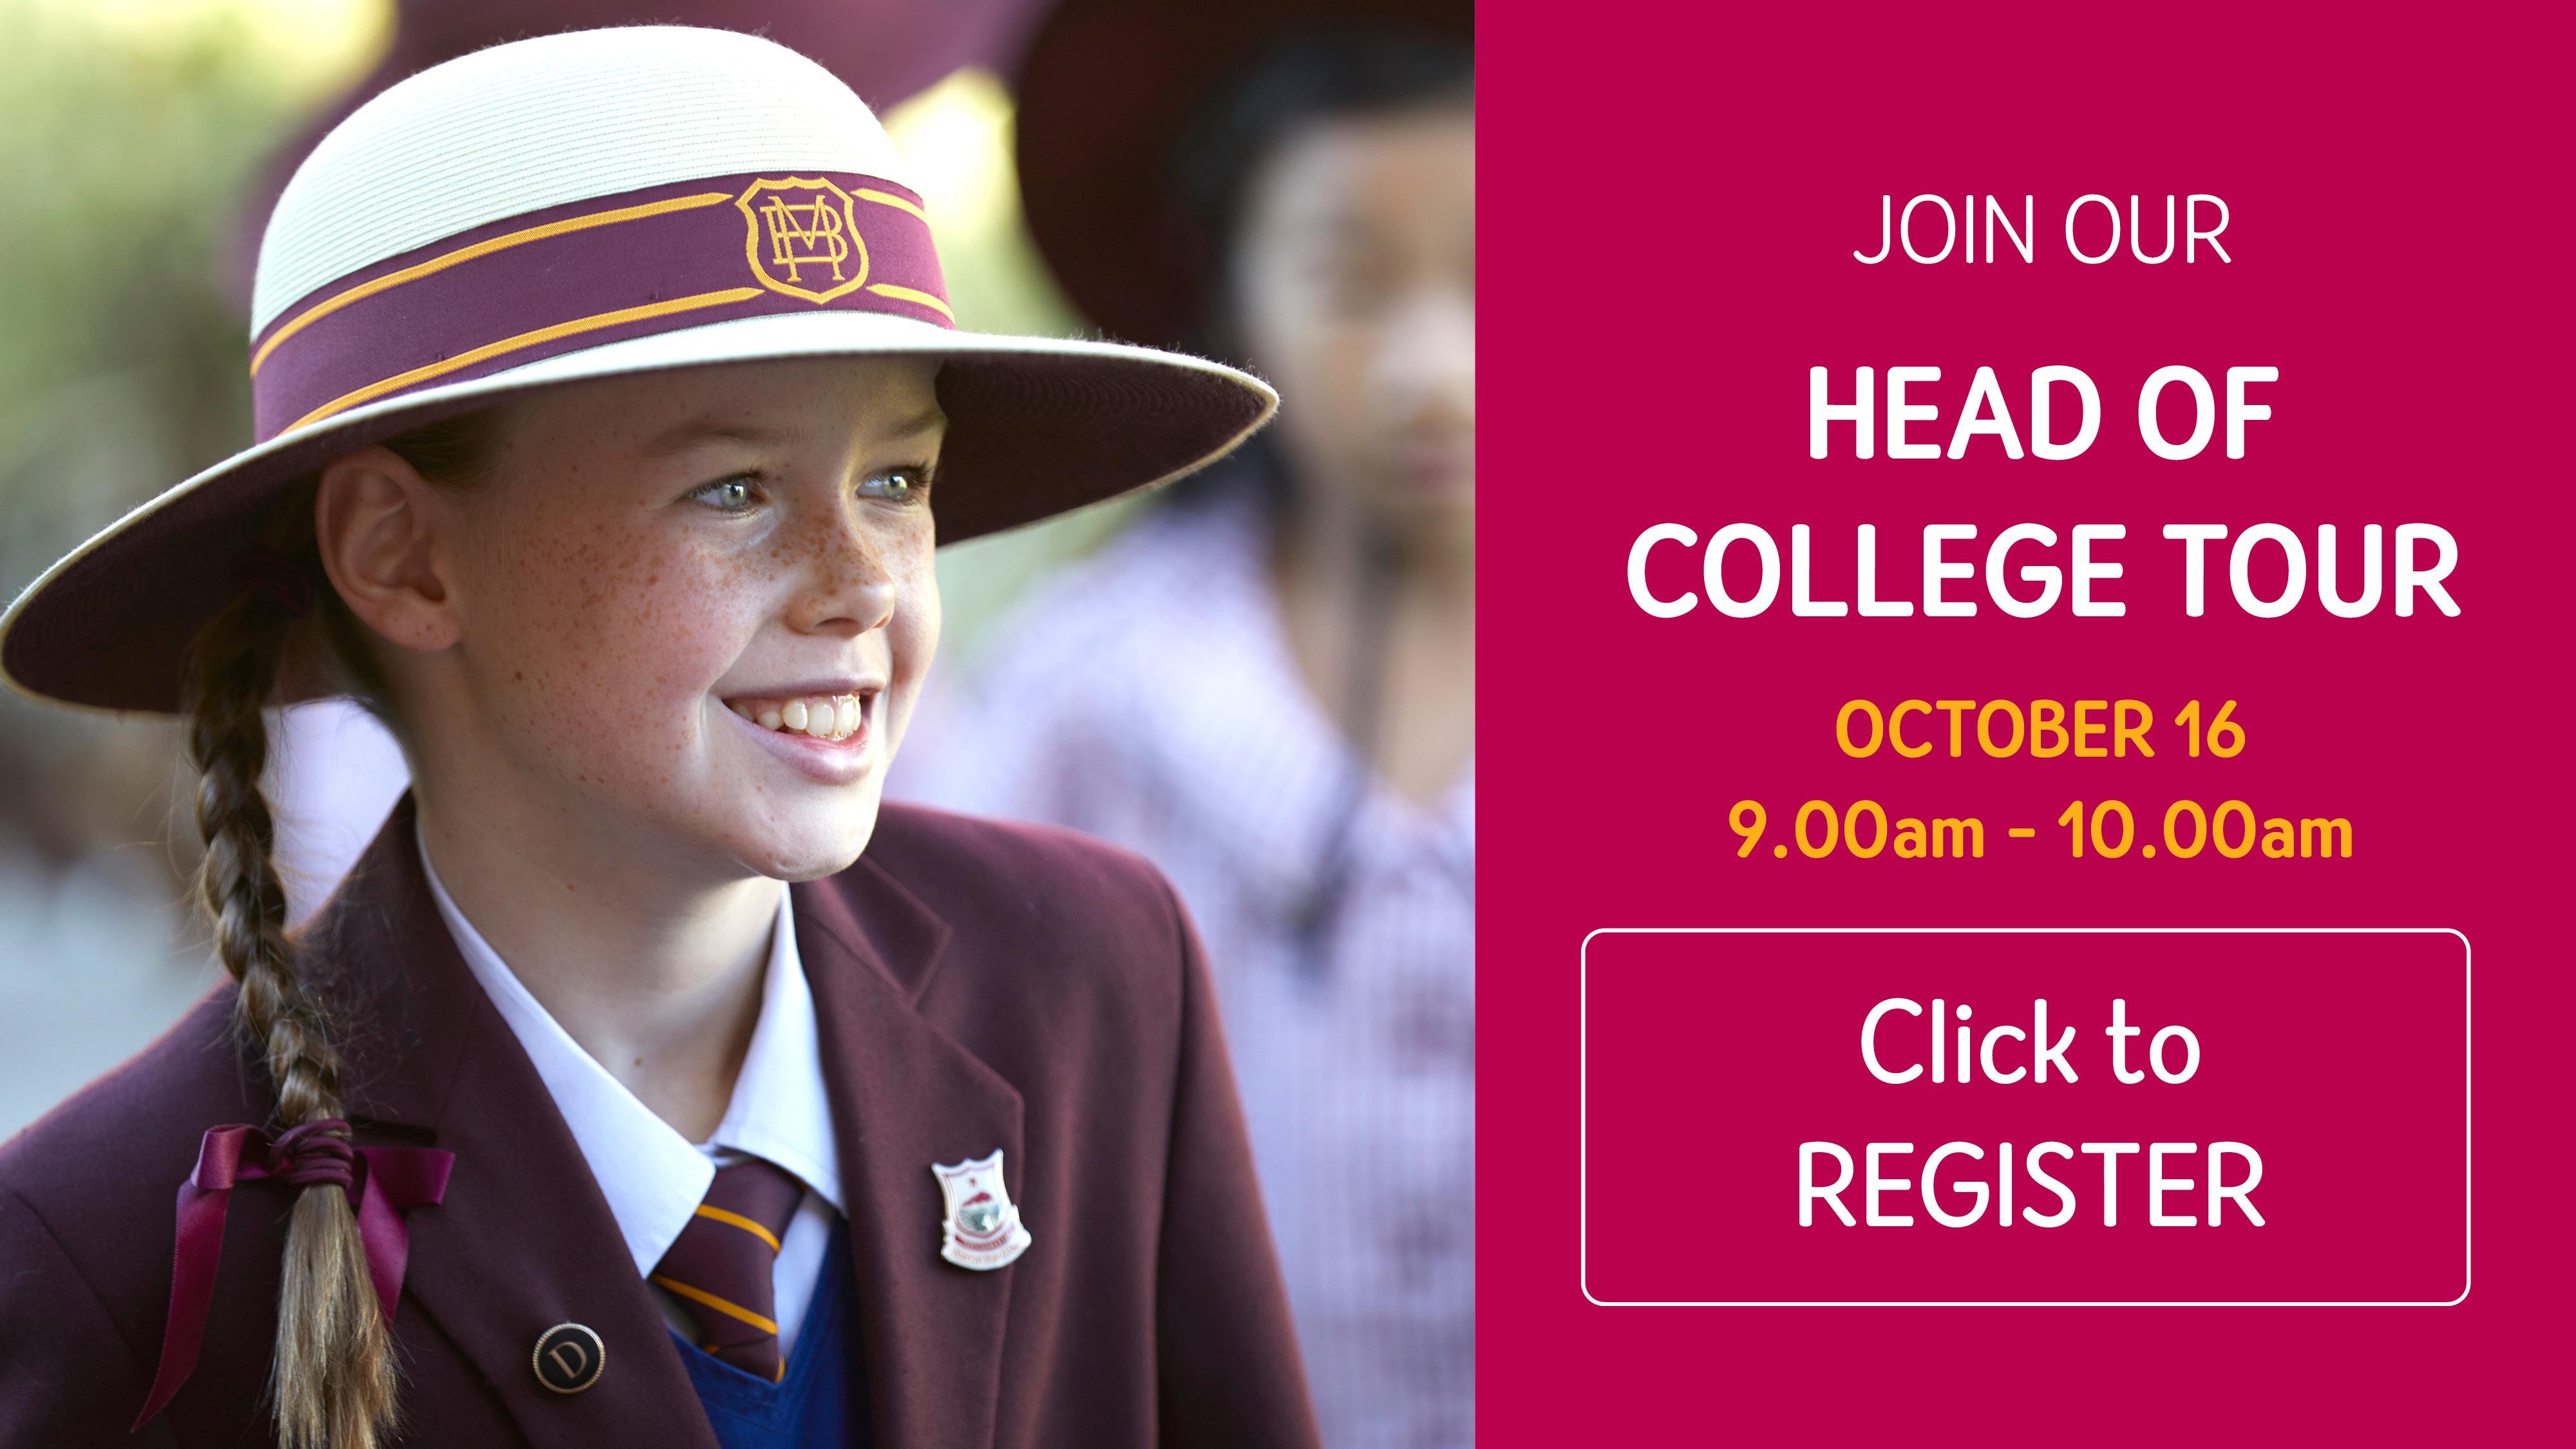 Head of College Tour